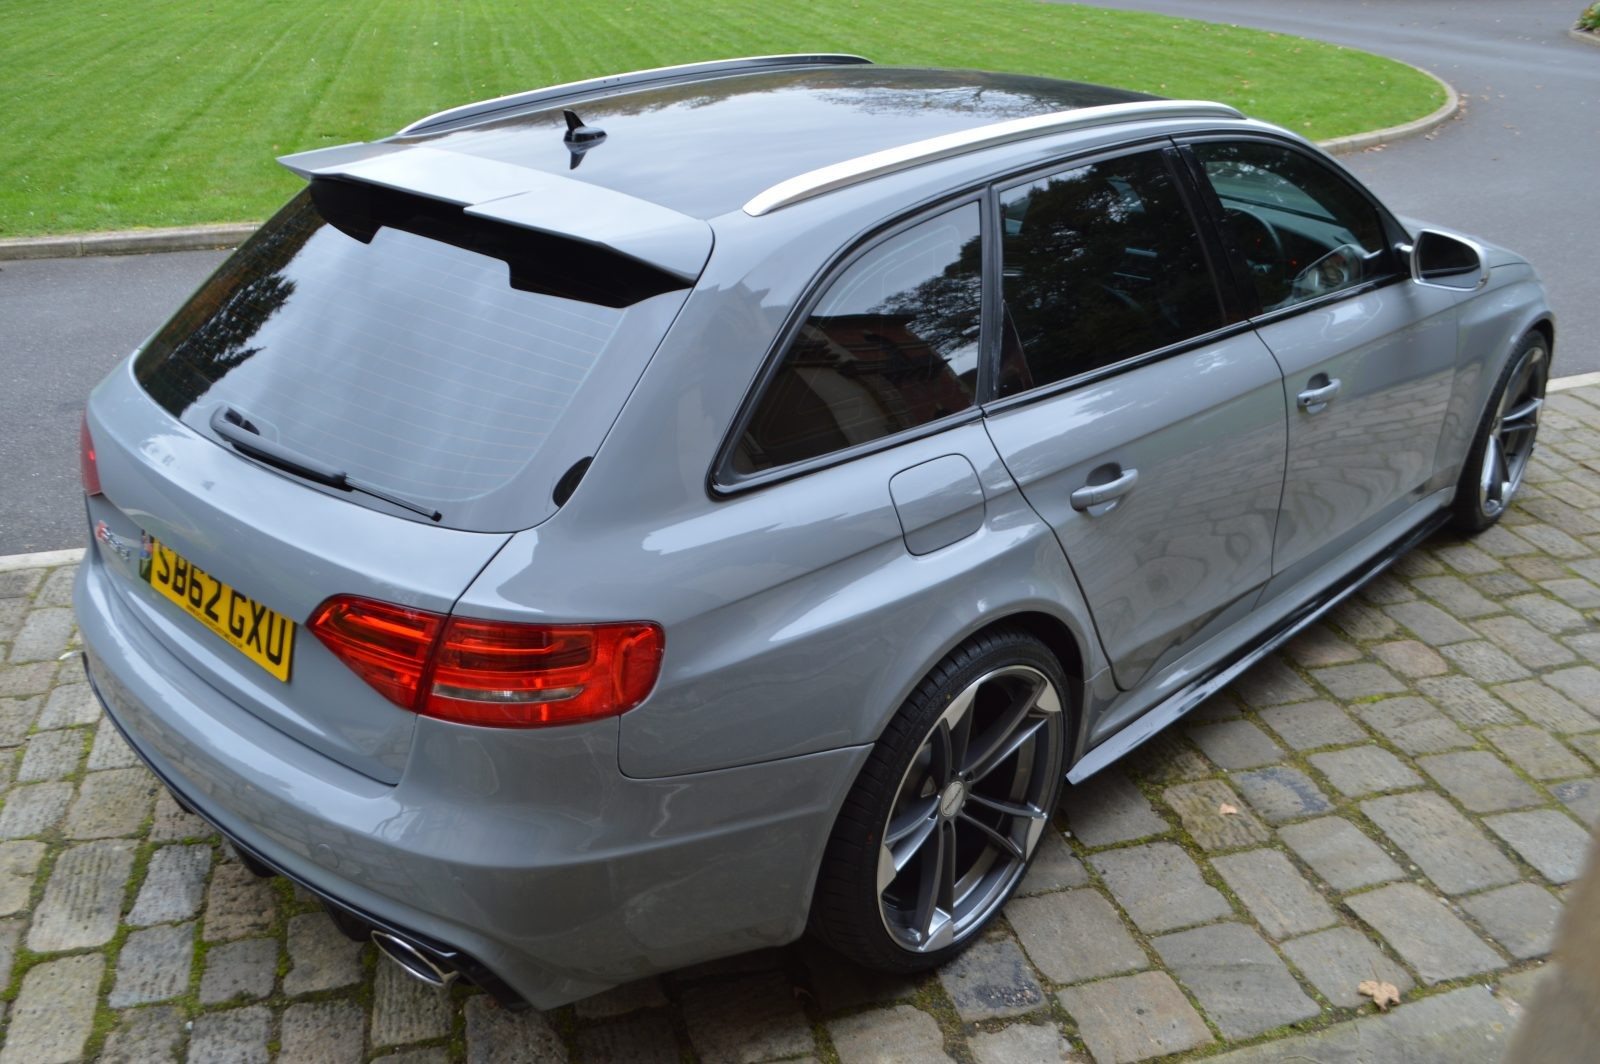 audi a4 b8 avant to rs4 full body kit body kits uk xclusive customz. Black Bedroom Furniture Sets. Home Design Ideas